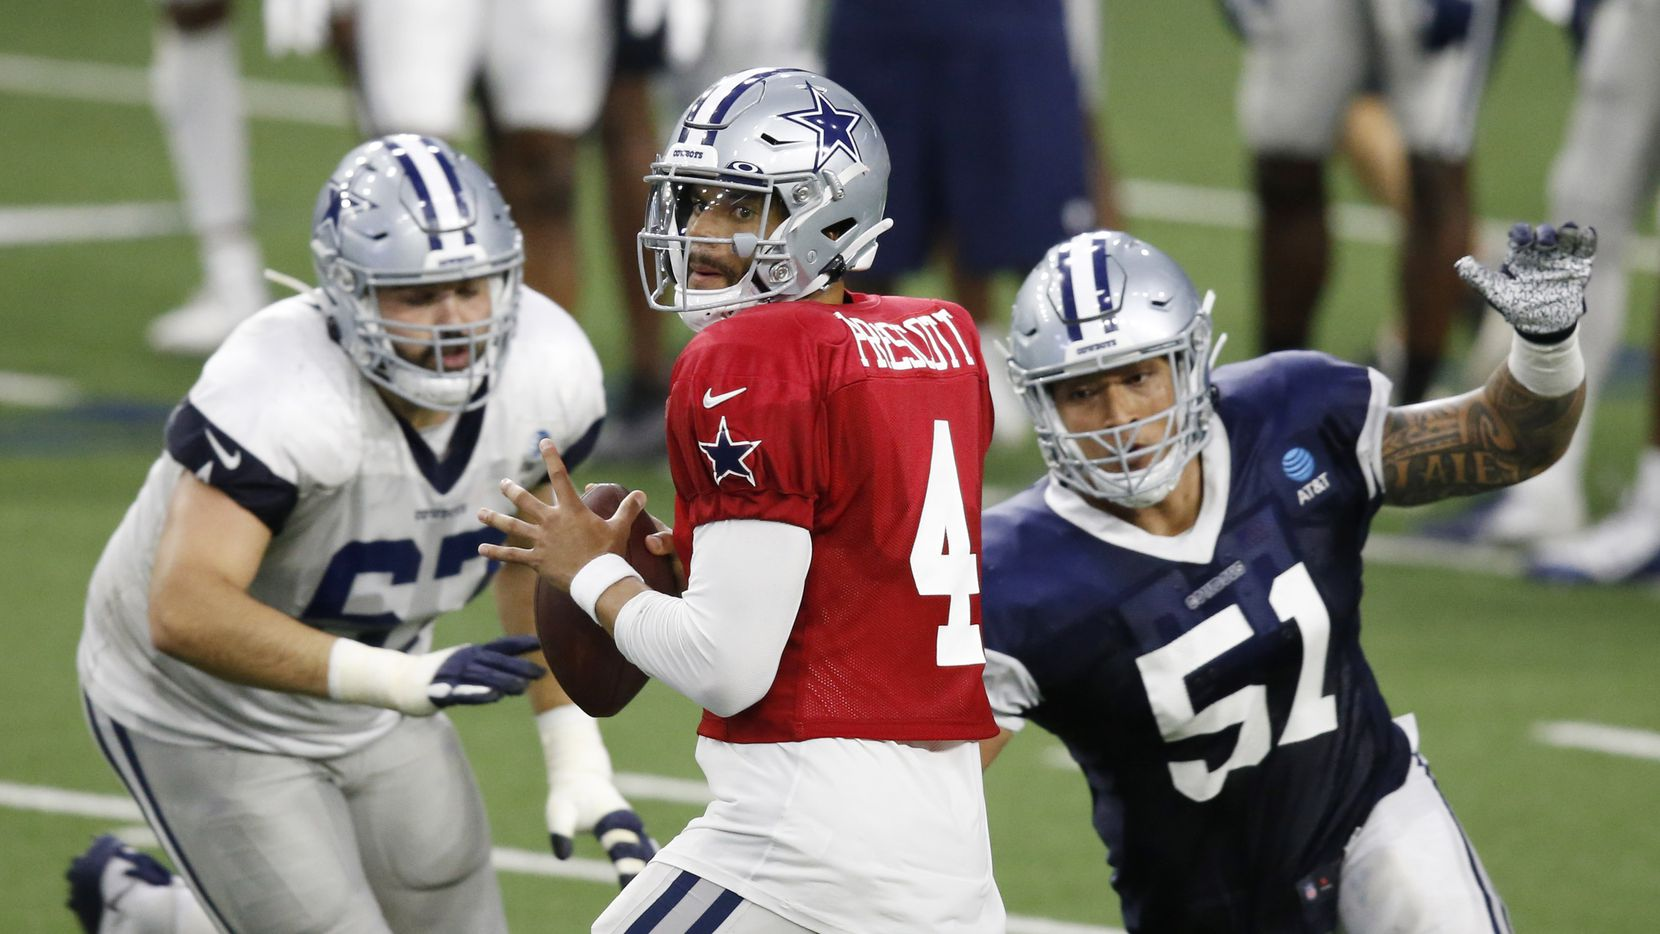 Dallas Cowboys quarterback Dak Prescott (4) looks to pass as Dallas Cowboys defensive end Bradlee Anae (51) closes in on him during training camp at the Dallas Cowboys headquarters at The Star in Frisco, Texas on Thursday, August 27, 2020.